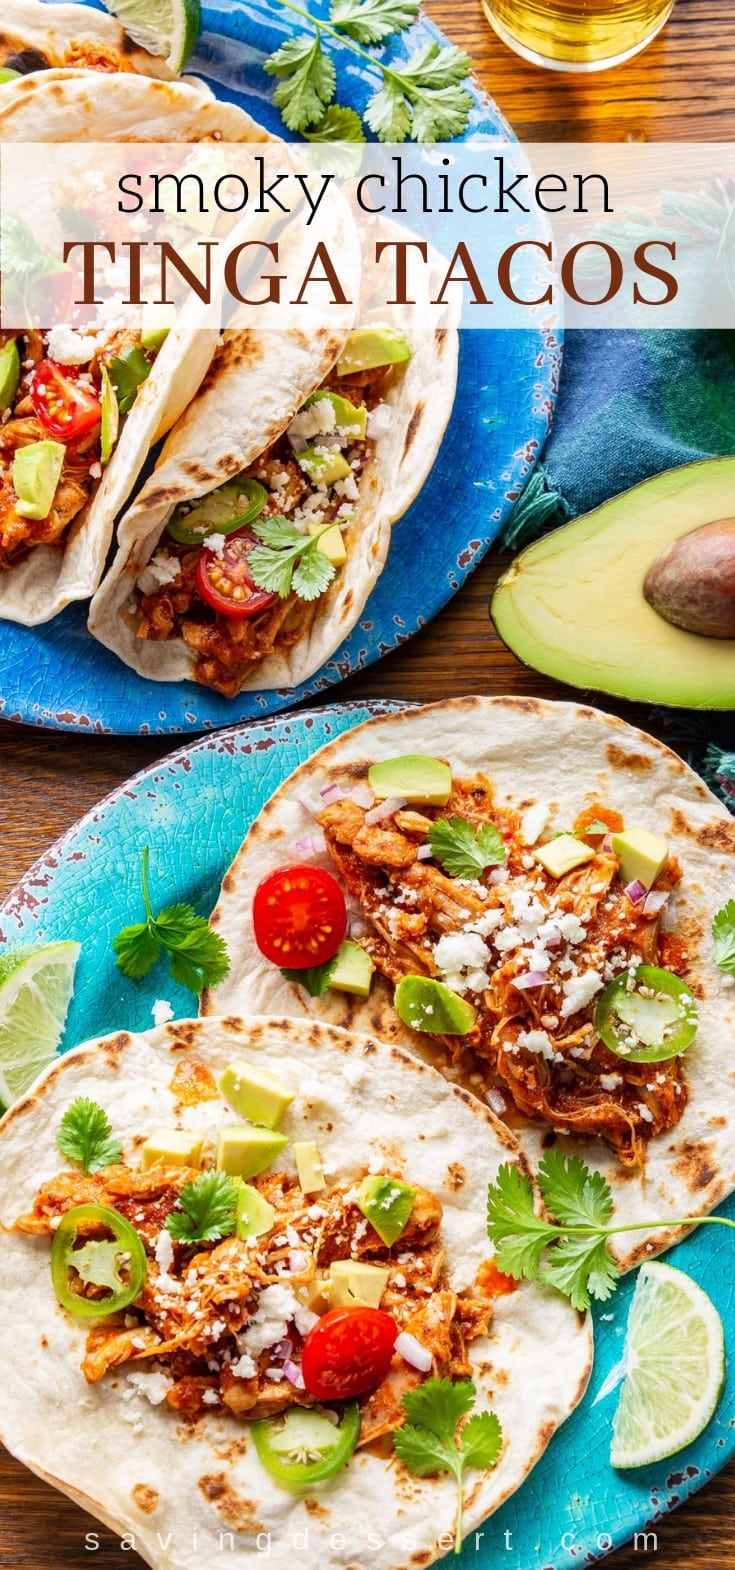 Smoky Chicken Tinga Tacos (tinga de pollo) - a flavorful Mexican dish made with fire roasted tomatoes, chipotle chilis in adobo sauce, and tender, shredded chicken. #chickentacos #tacotuesday #tinga #chickentinga #cincodemayo #mexican #adobosauce #chipotle #taco